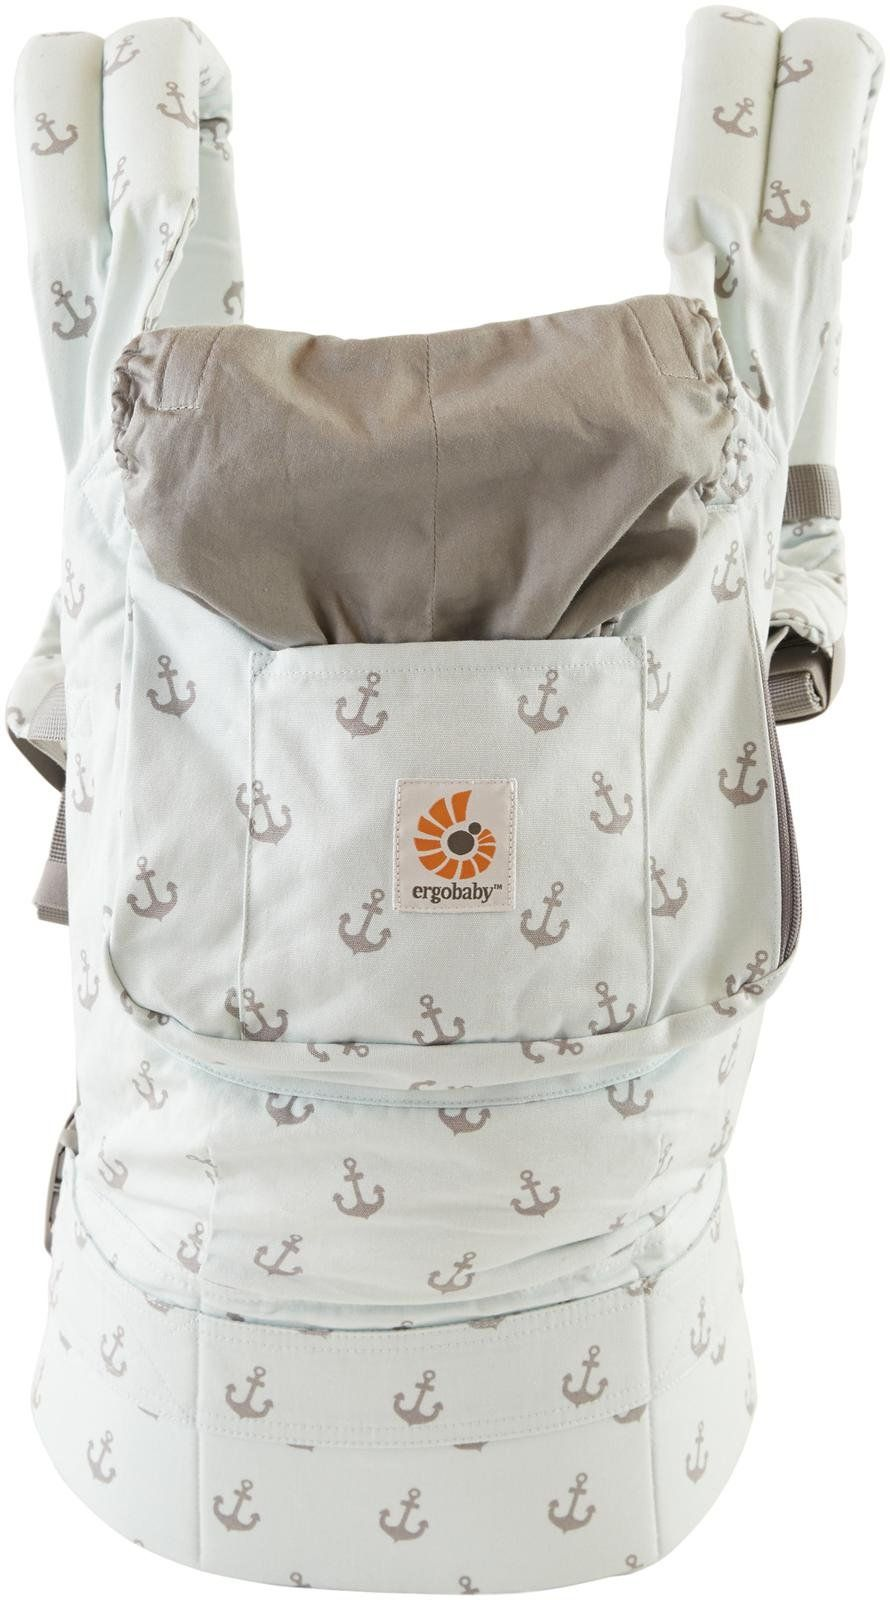 aabe717564a Ergobaby Original Baby Carrier - Sea Skipper - Free Shipping ...